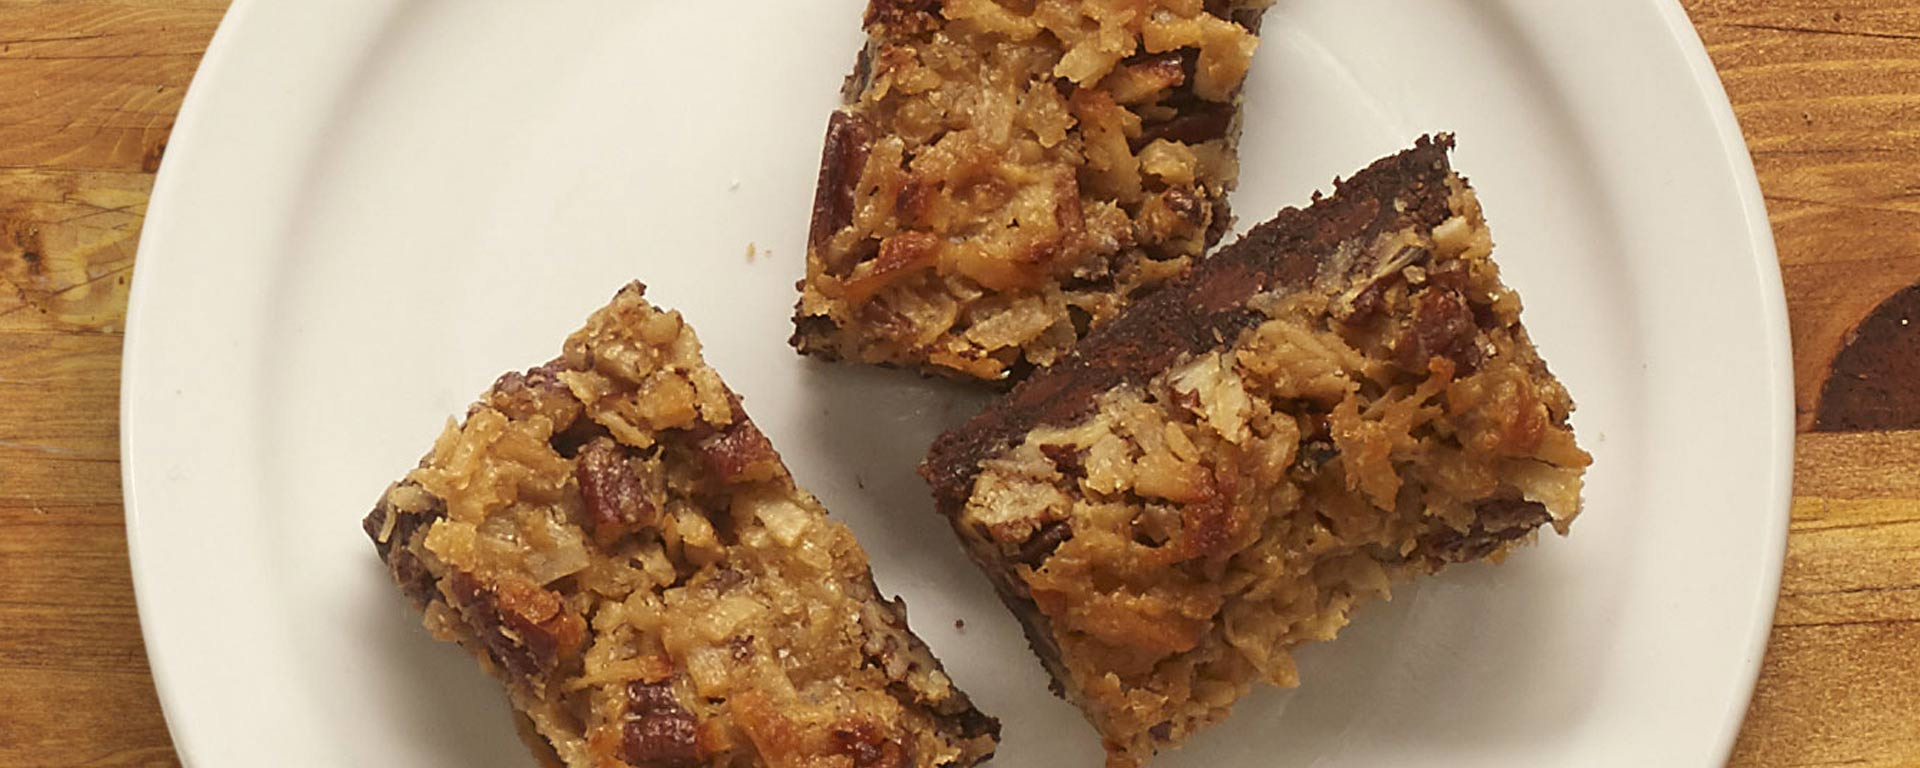 Photo for - Chocolate Coco-pecan Cookie Bar